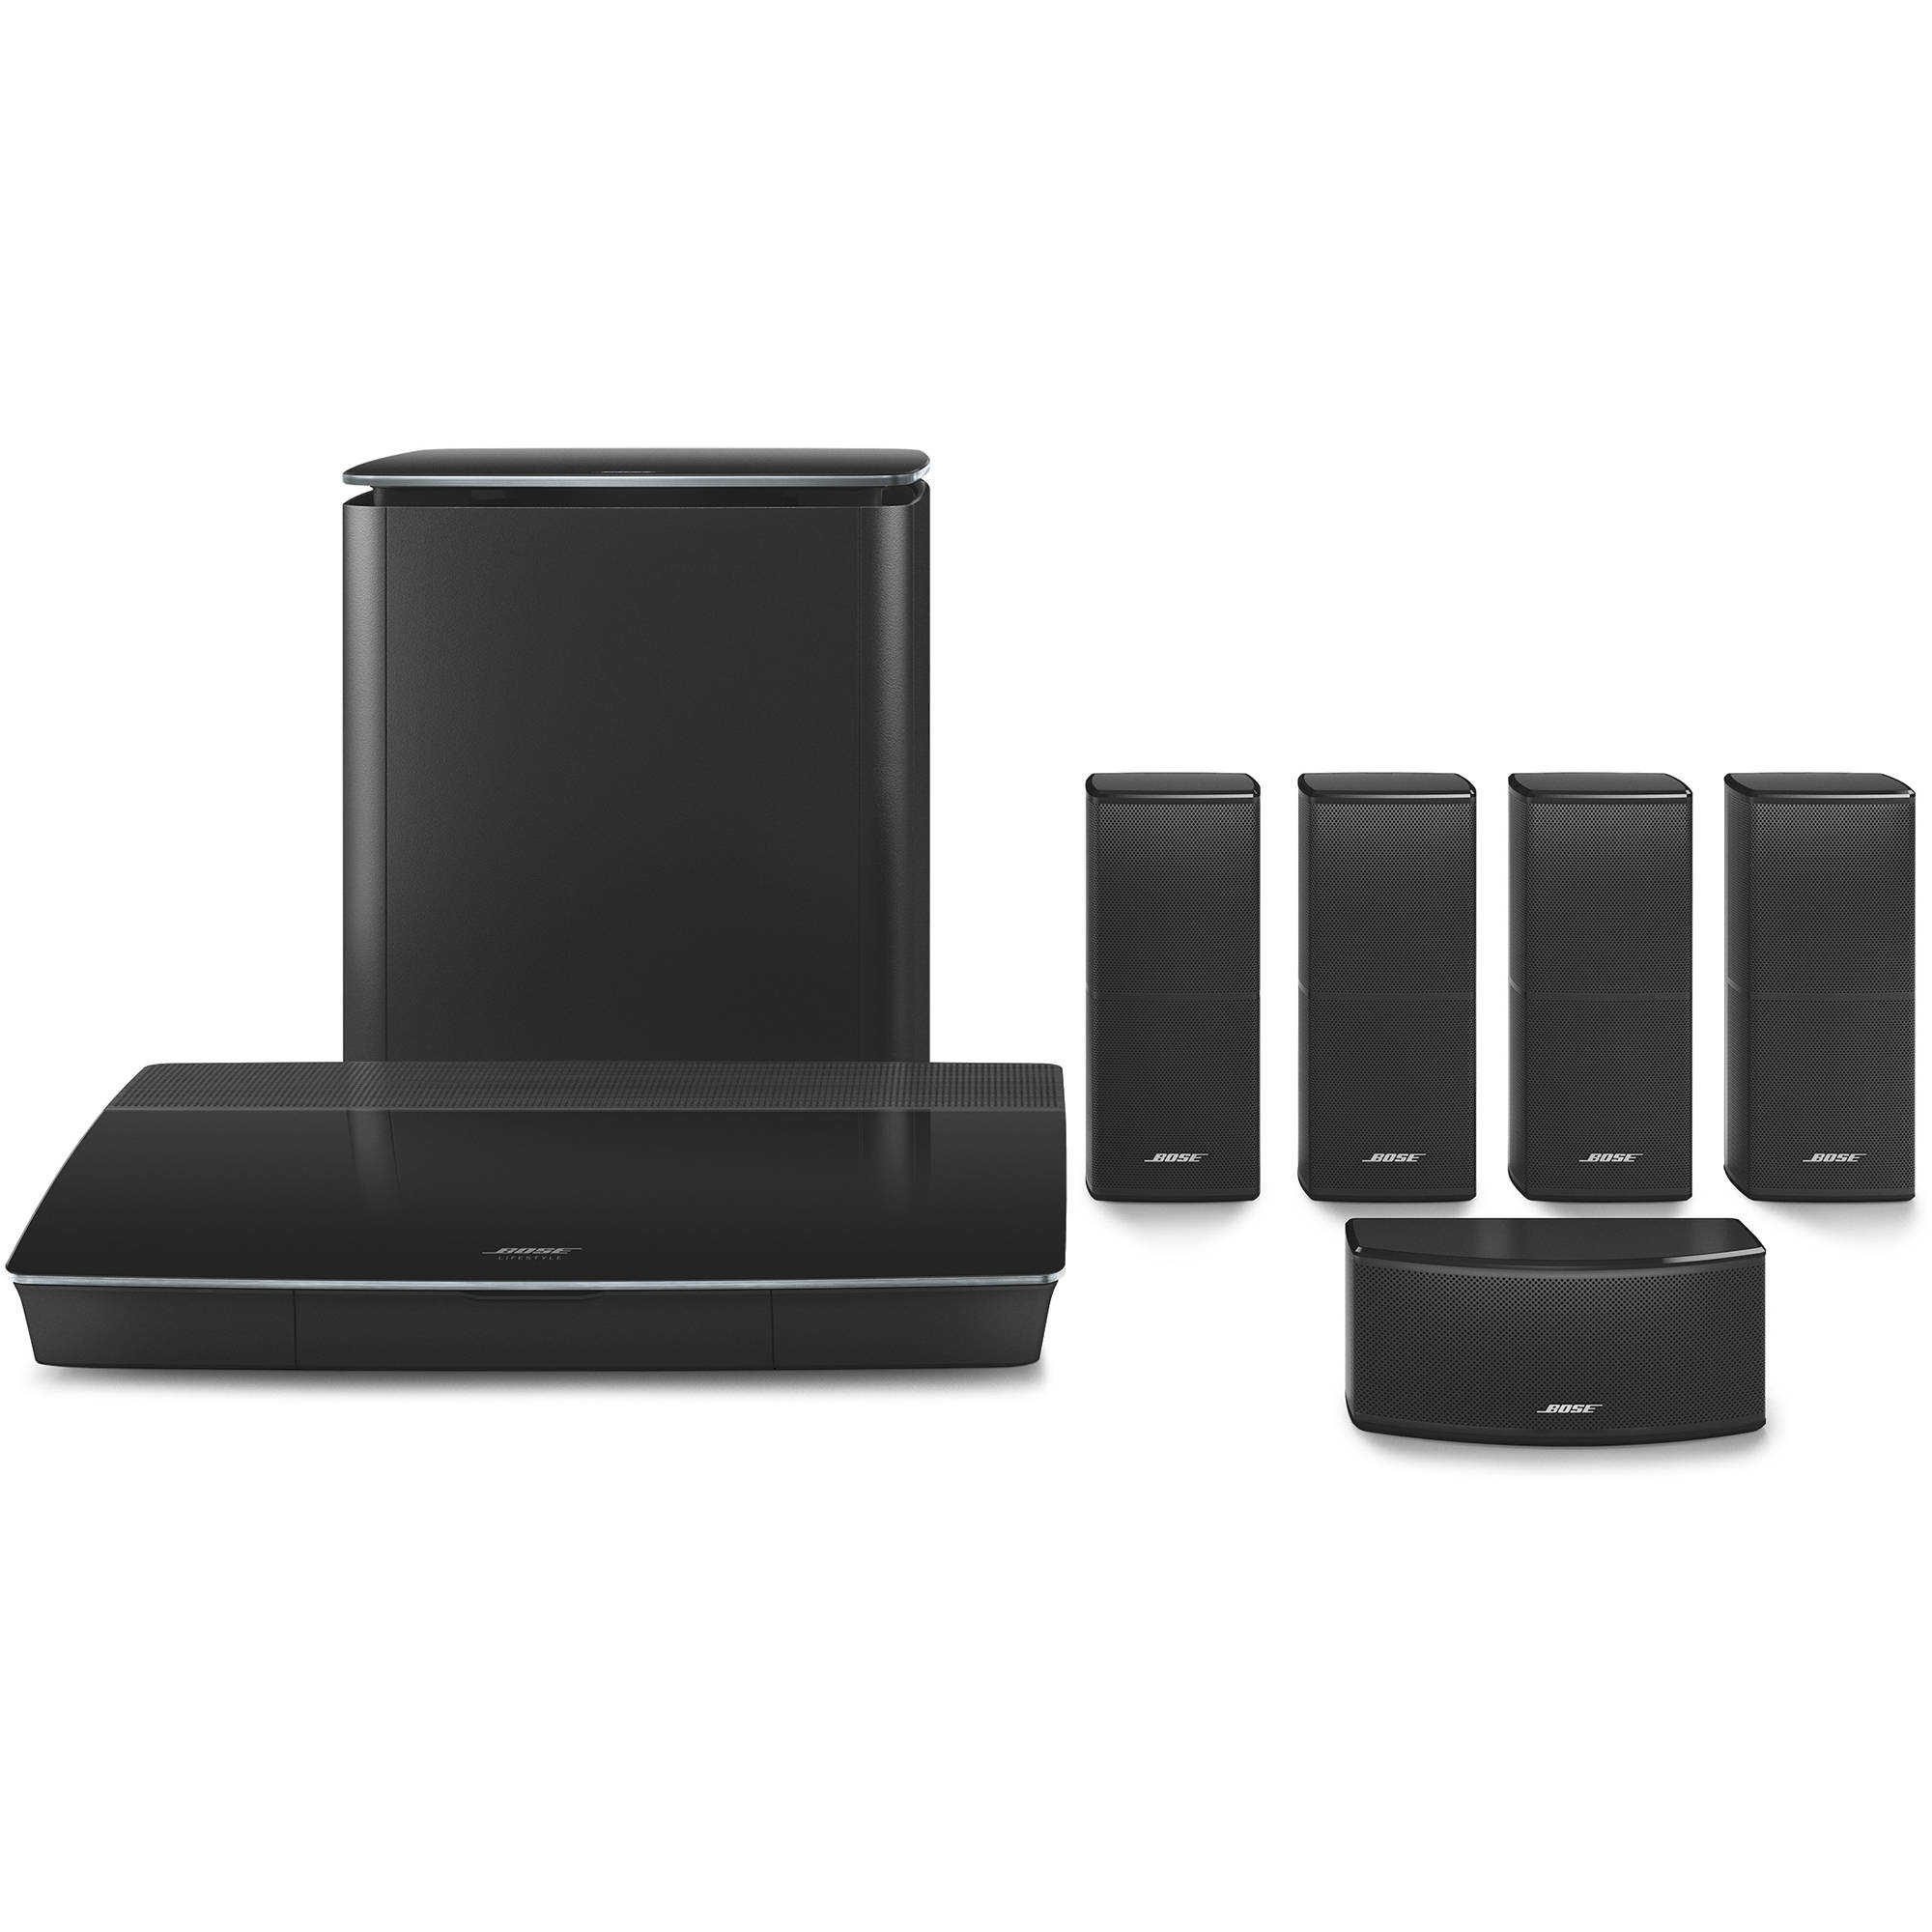 hight resolution of bose lifestyle 600 home theater system with jewel cube speakers black